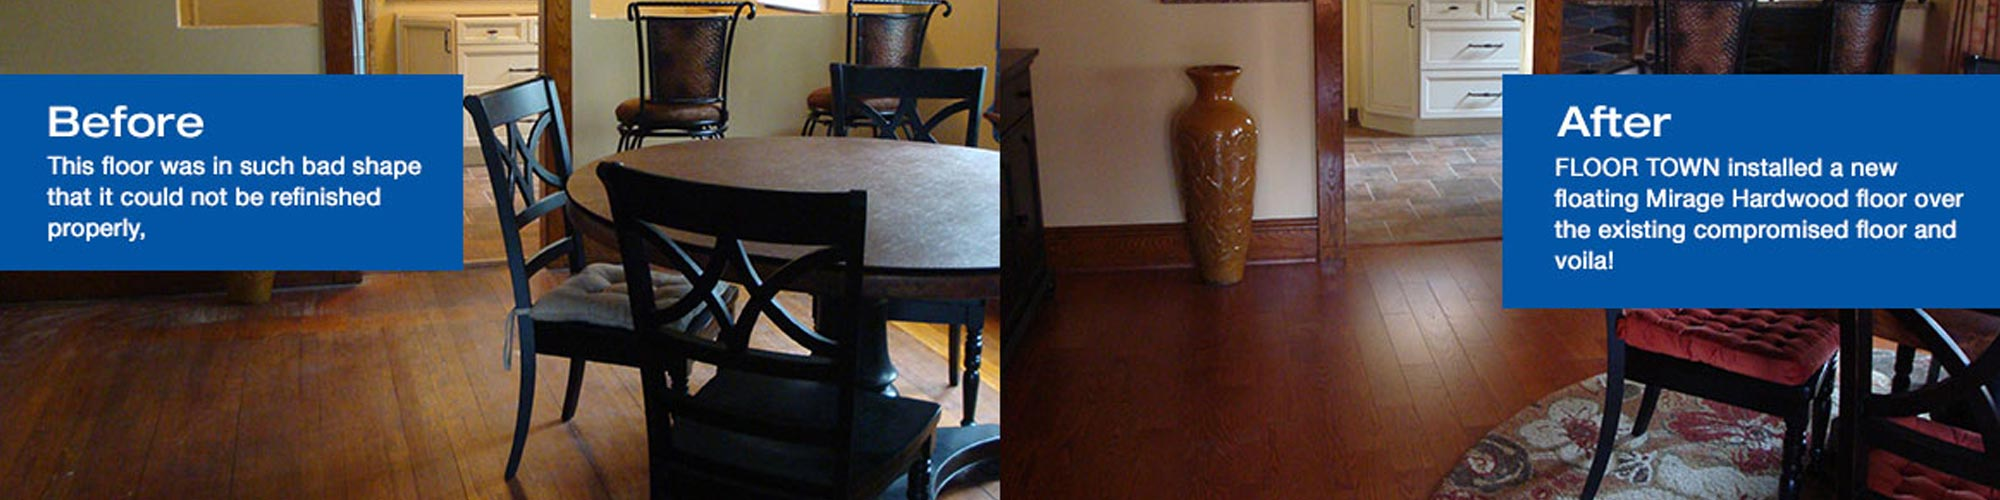 Floor Town Hardwood Before and After